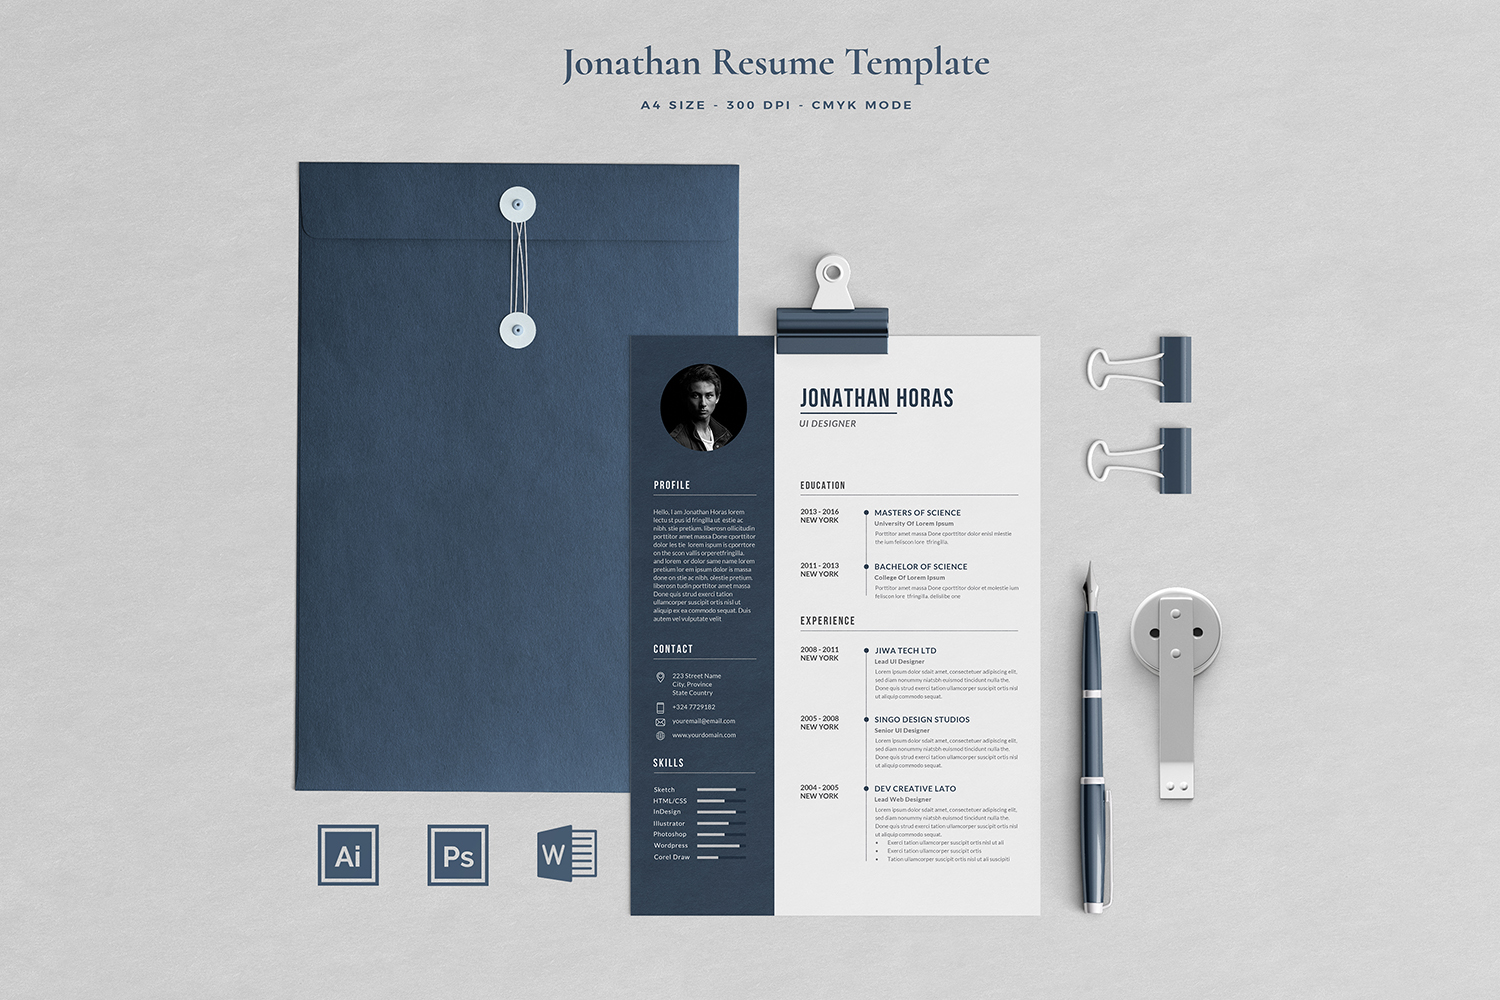 Job Seeker's Resume Bundle example image 8